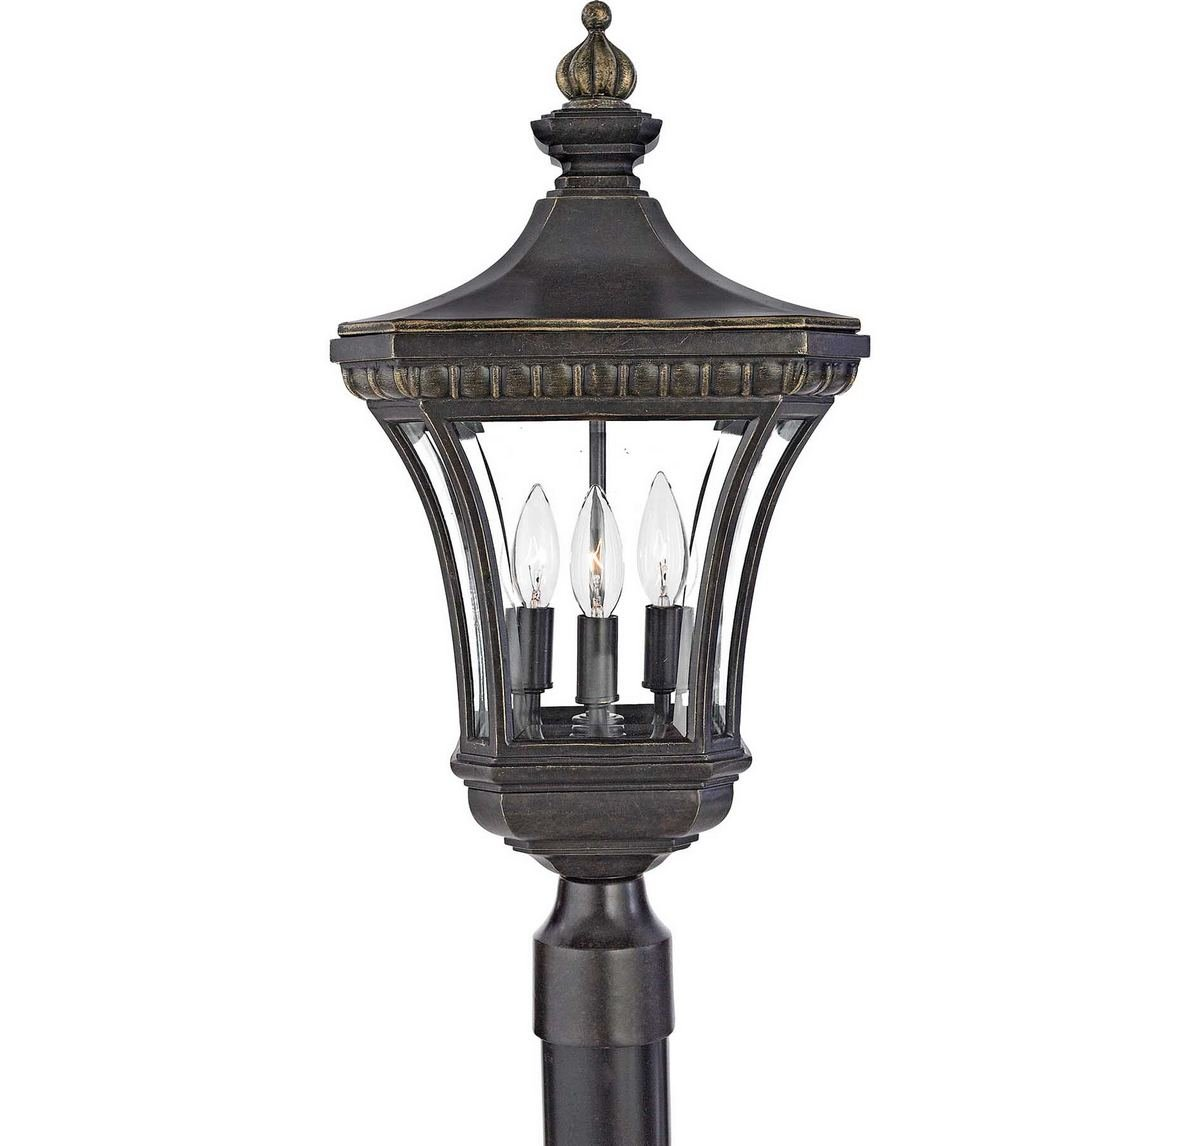 Quoizel DE9256IB Devon 23-Inch x 11-Inch 3 Light Outdoor Post Lantern, Imperial Bronze by Quoizel